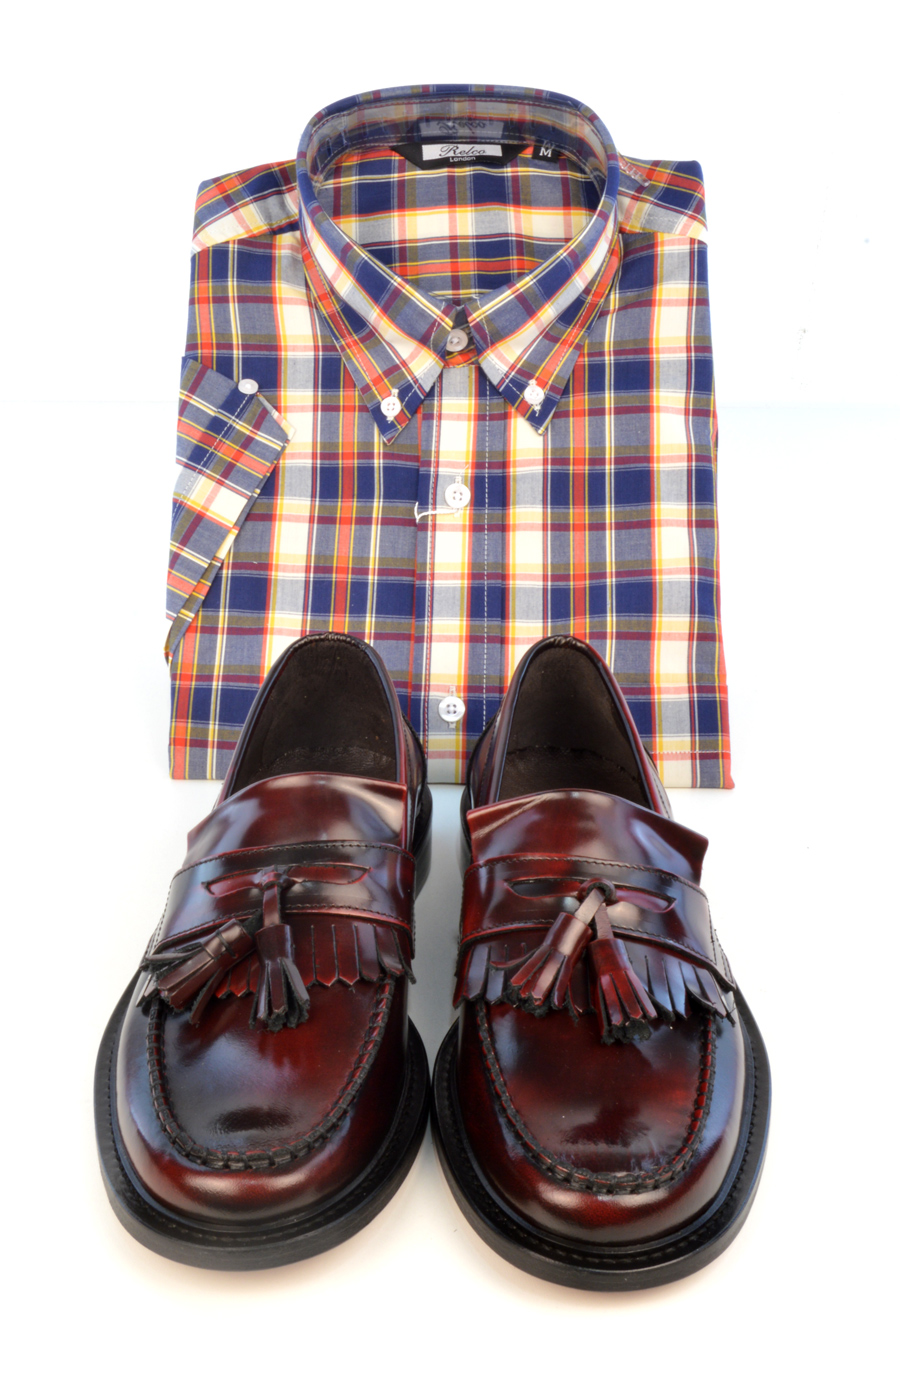 modshoes-prince-oxblood-tassel-loafers-with-check-shirt